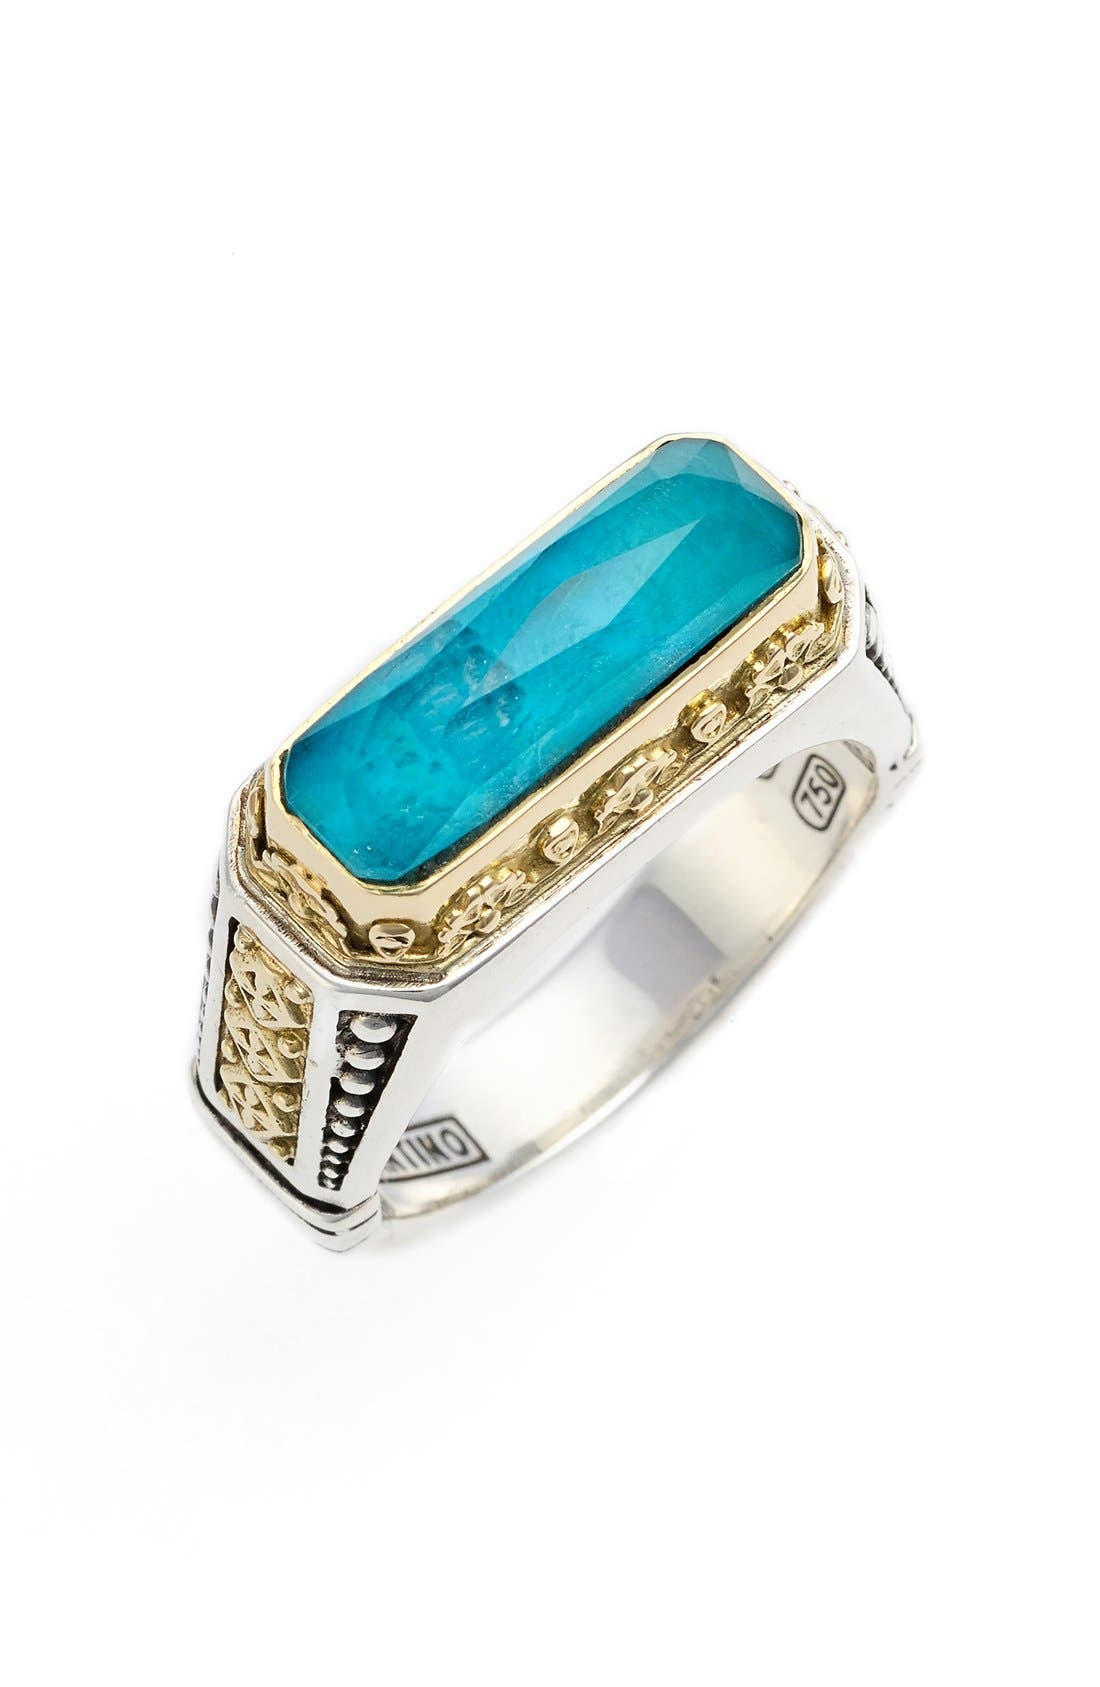 Main Image - Konstantino 'Iliada' Etched Ring